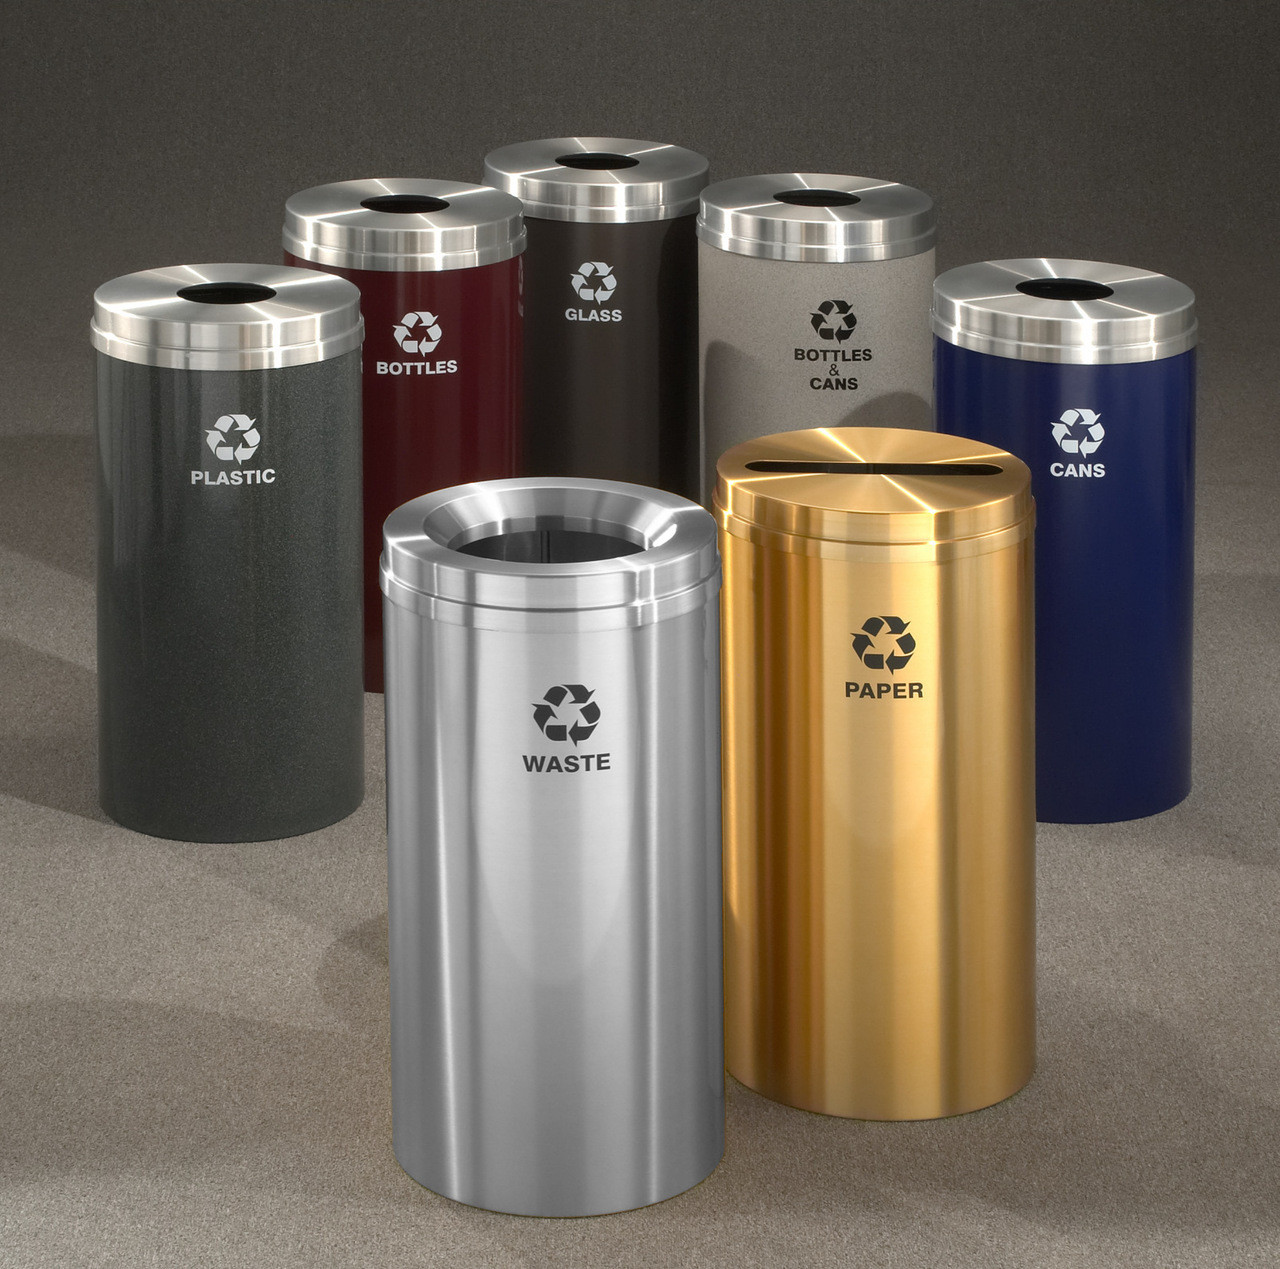 16 Gallon Metal Recycling Trash Can 29 Finishes 4 Recycling Choices with Liner